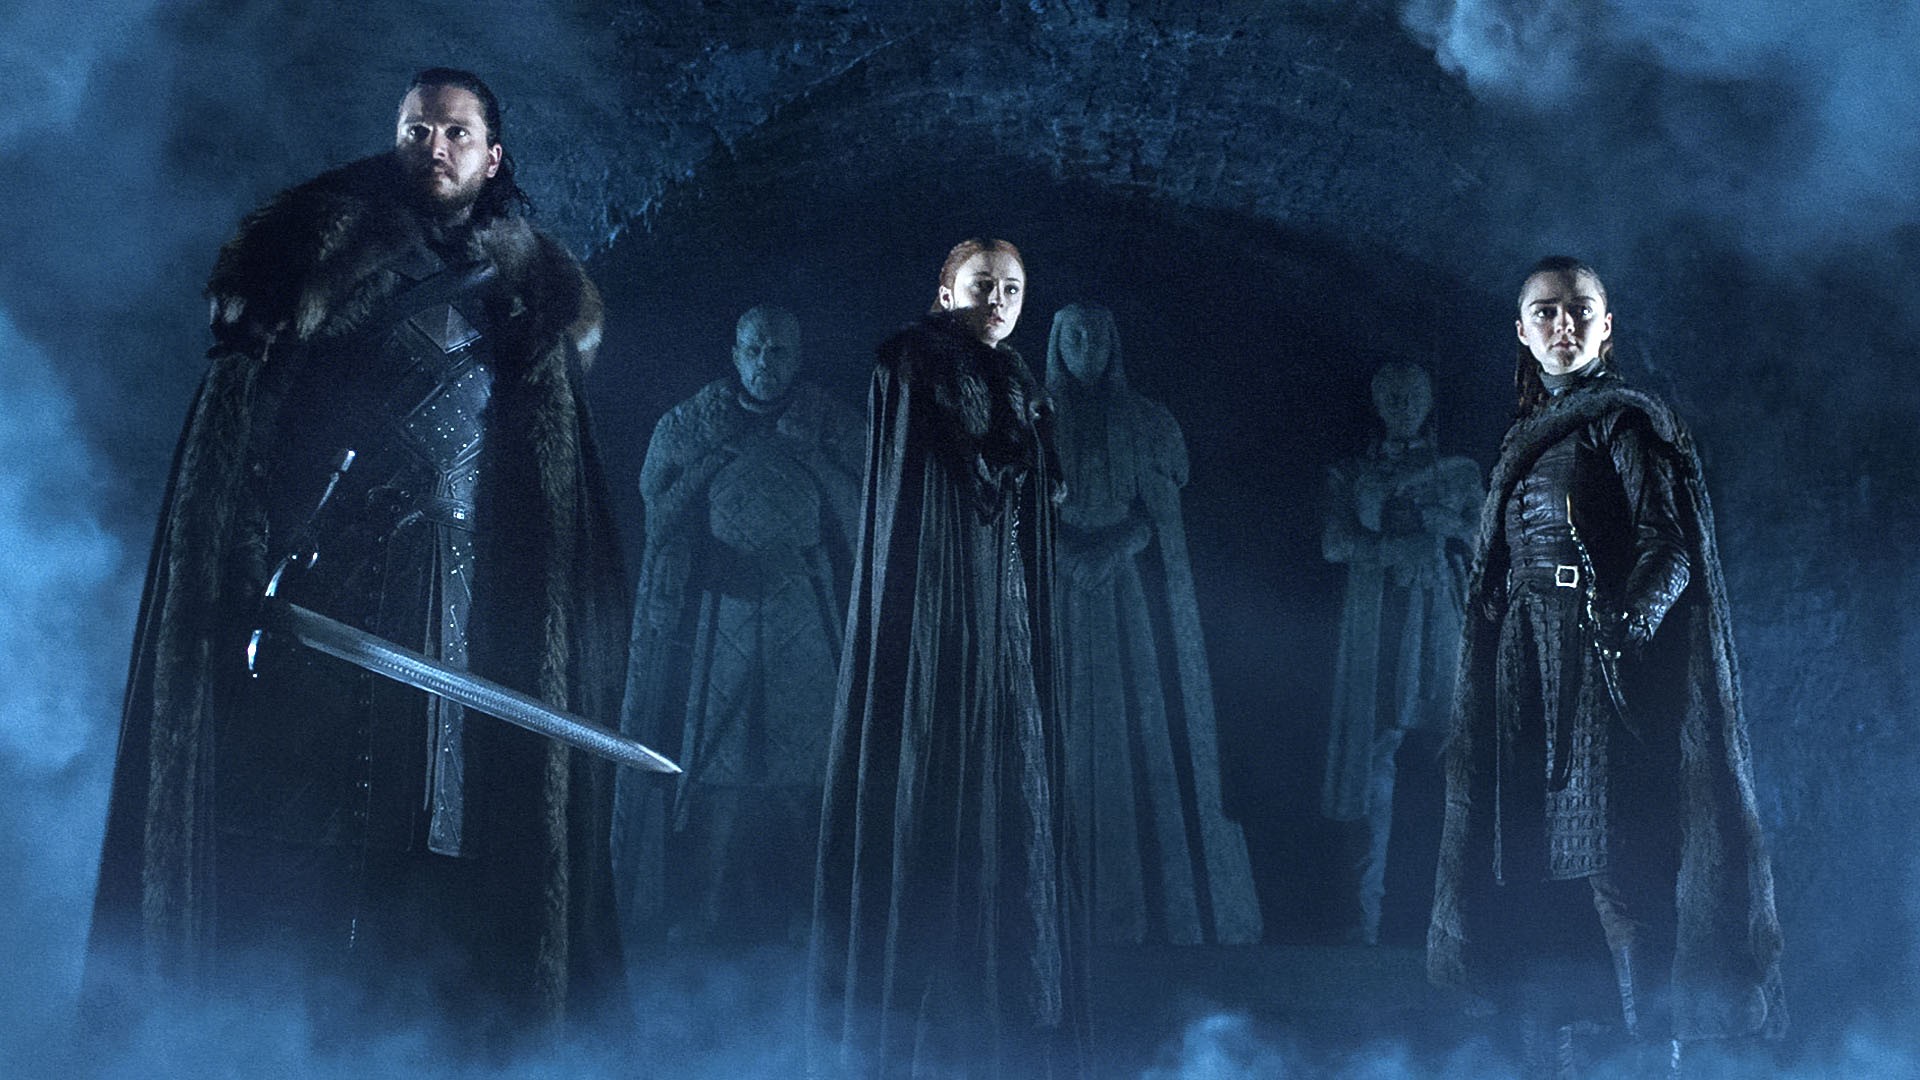 Game of Thrones Season 8 : Fight Against White Walkers with a Surprising Twist